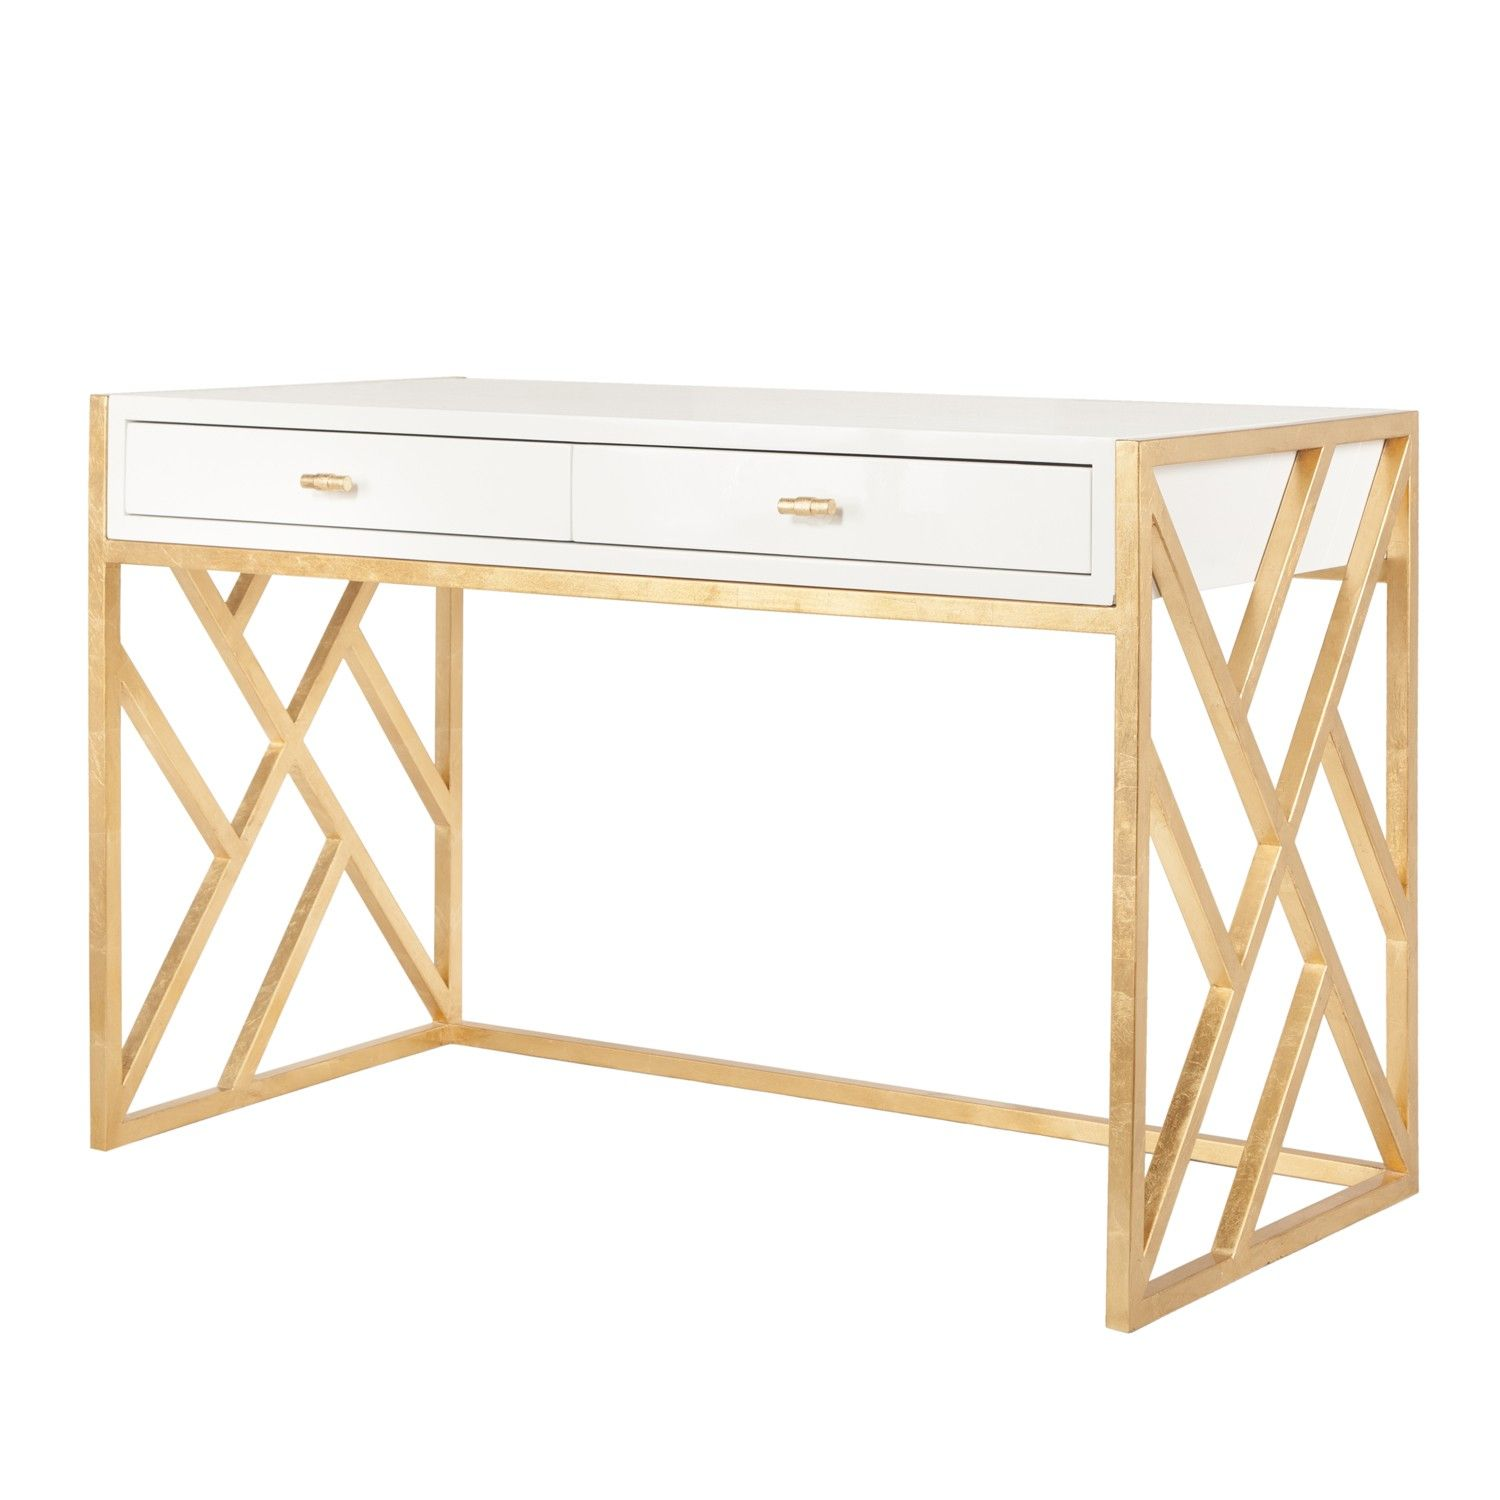 Veronica Lacquered Desk Mecox Gardens White Desk Gold White Lacquer Desk Lacquer Desk